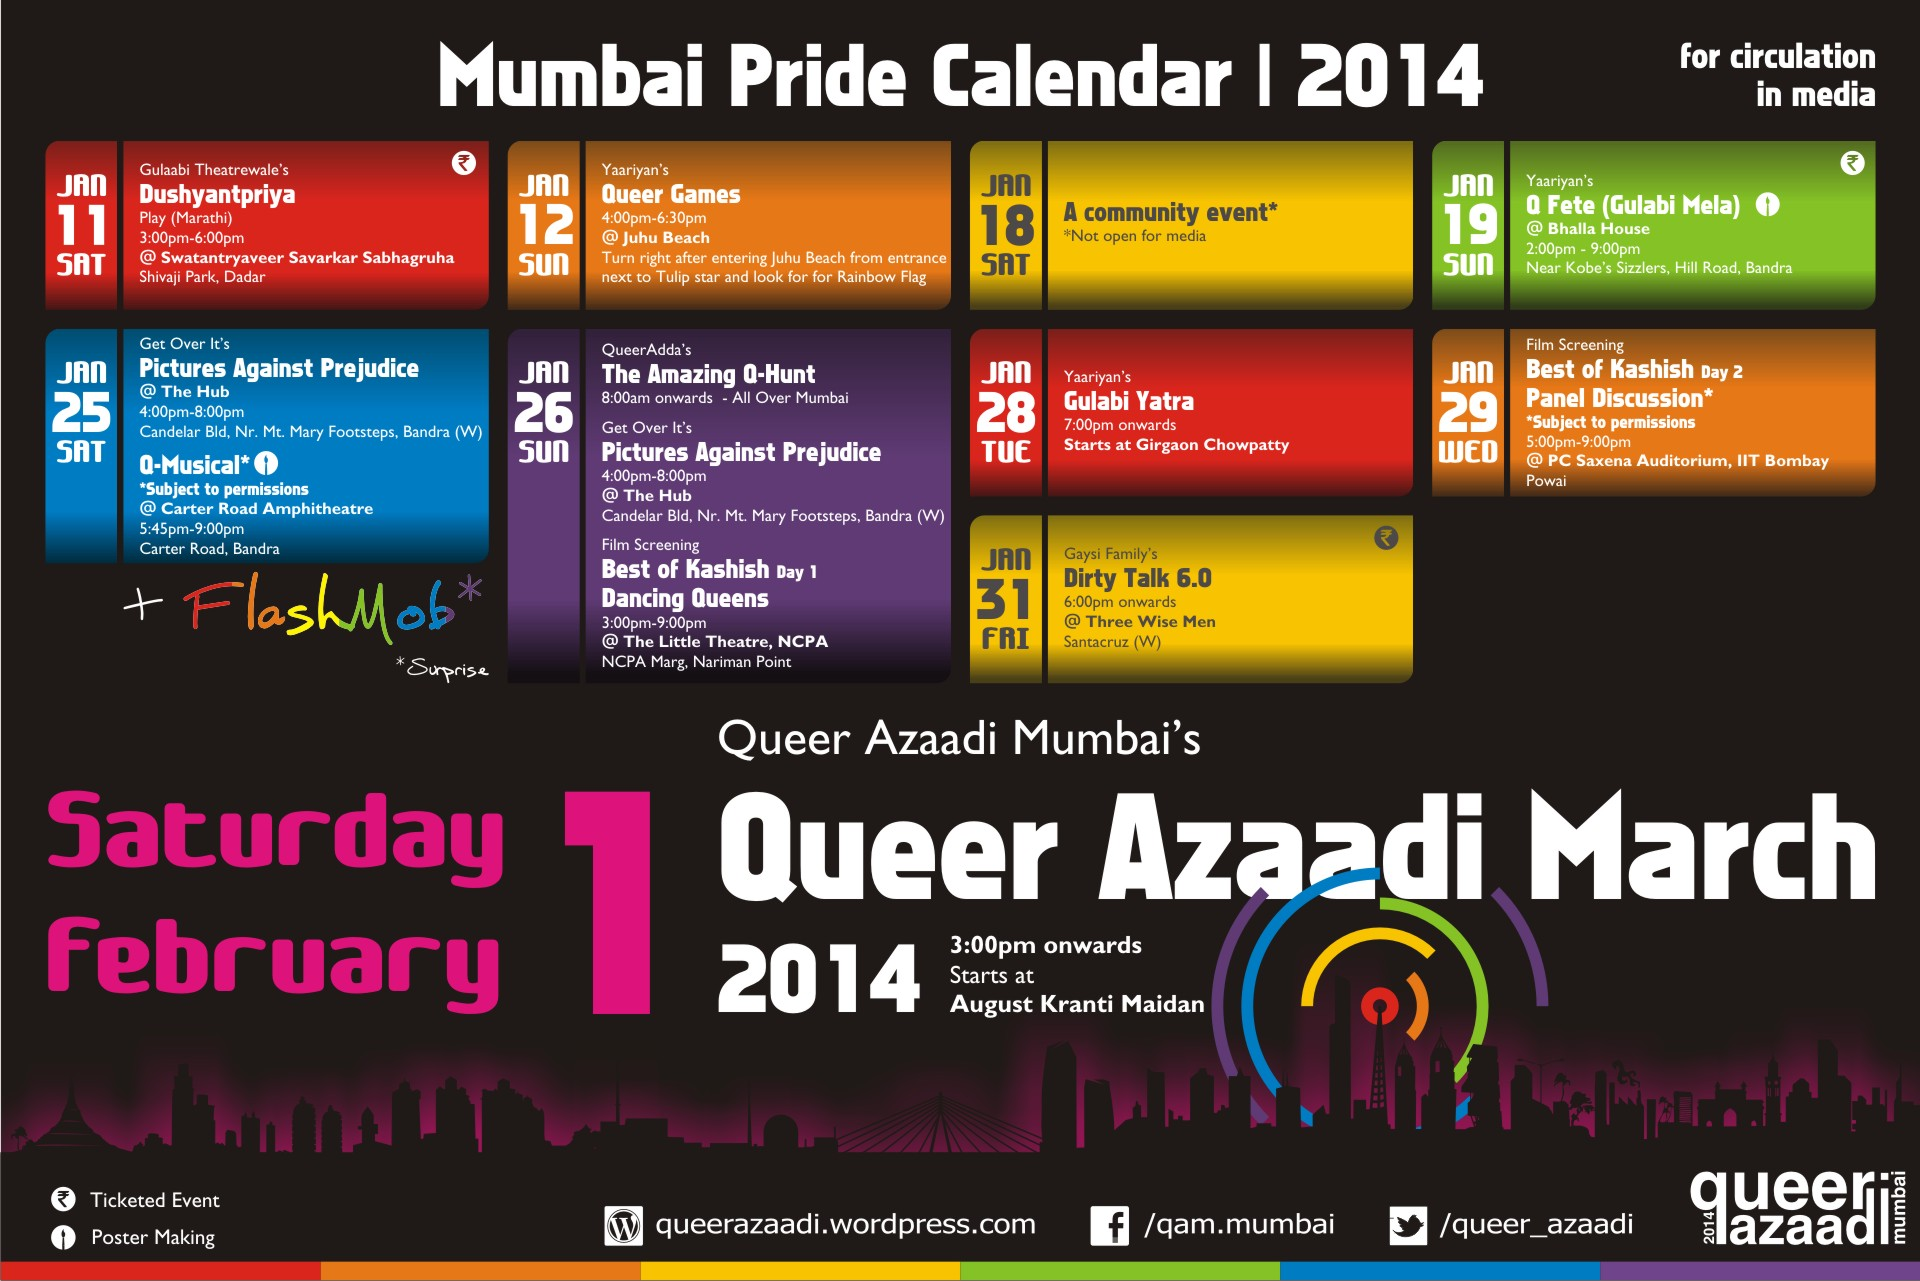 What Is Happening This Month For Mumbai Pride 2014?